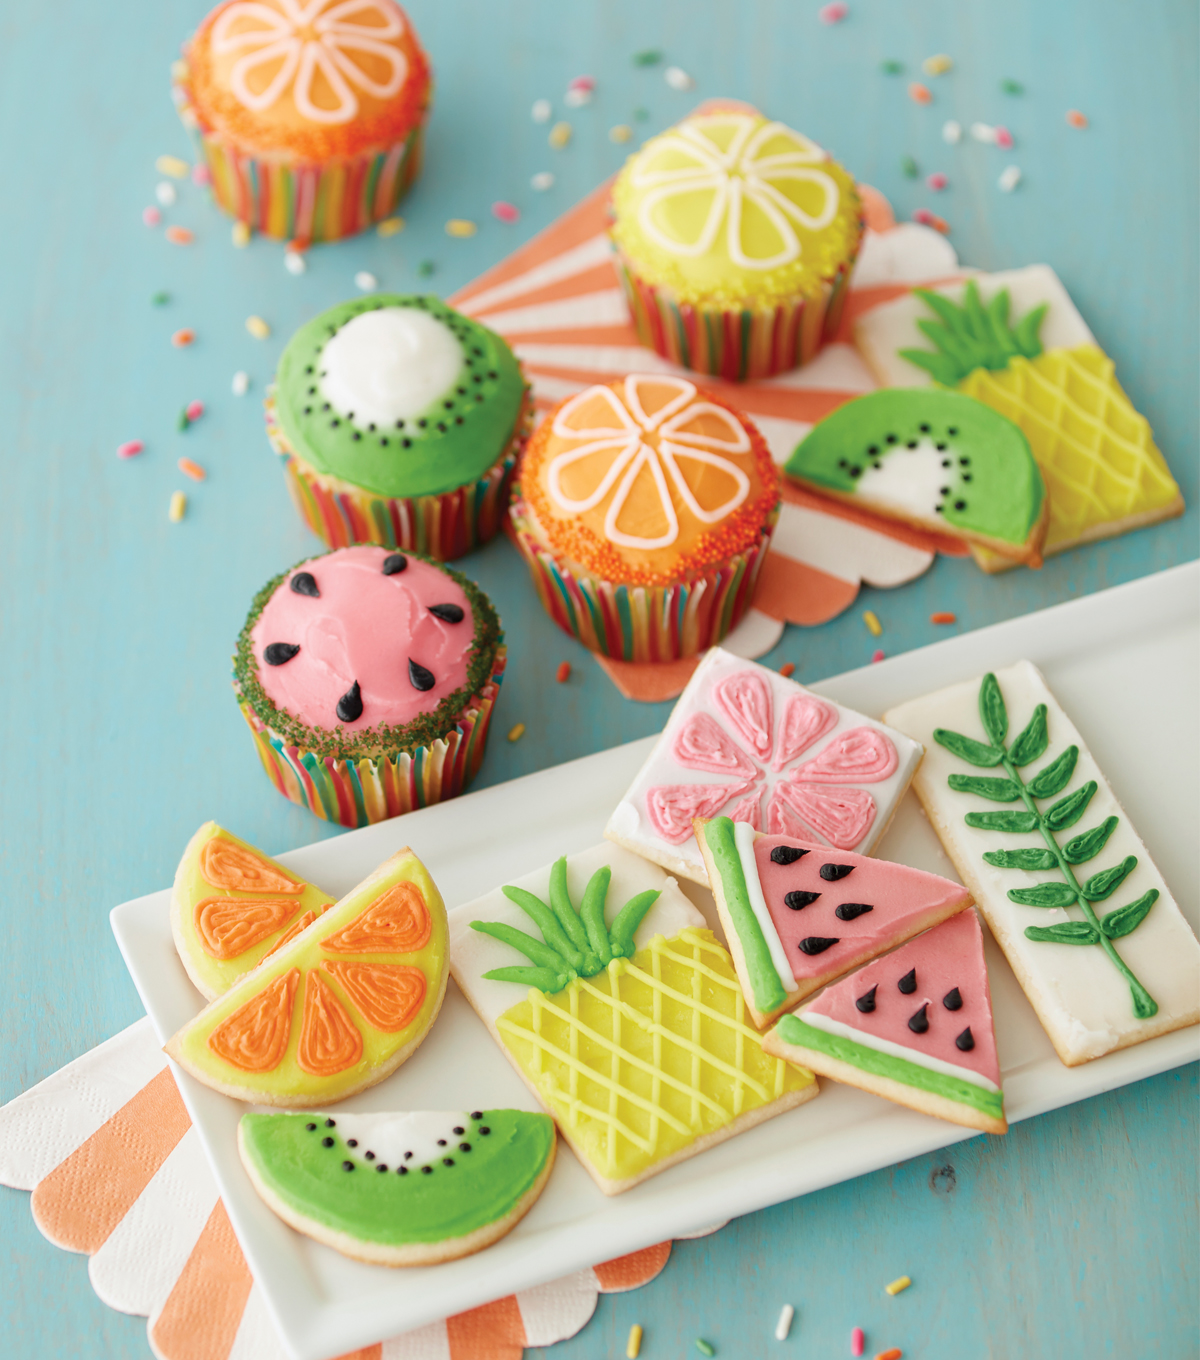 How To Make Fruits of Summer Cupcakes and Cookies